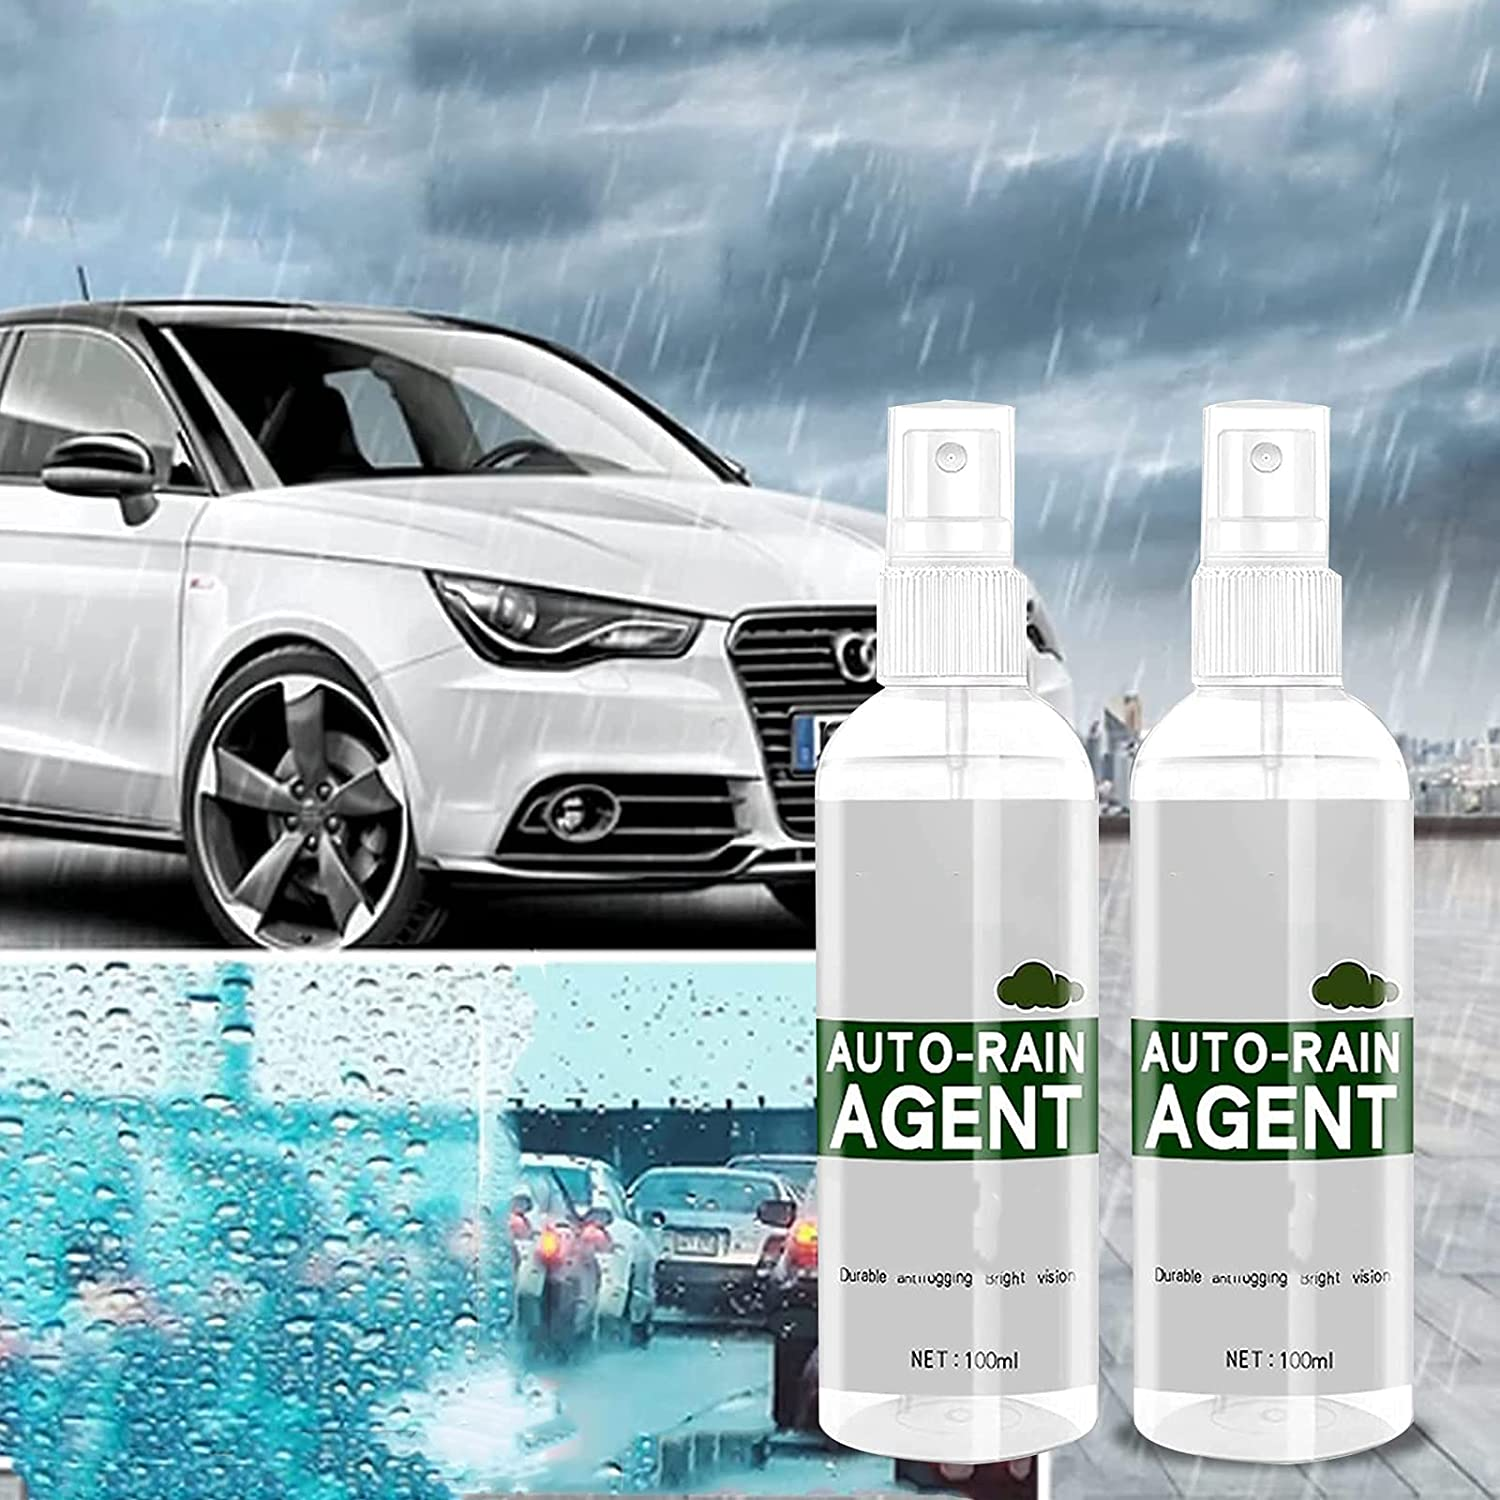 Yqwheg Max 75% OFF 2PCS price Car Glass Waterproof Agent Rain Coating S Repellent